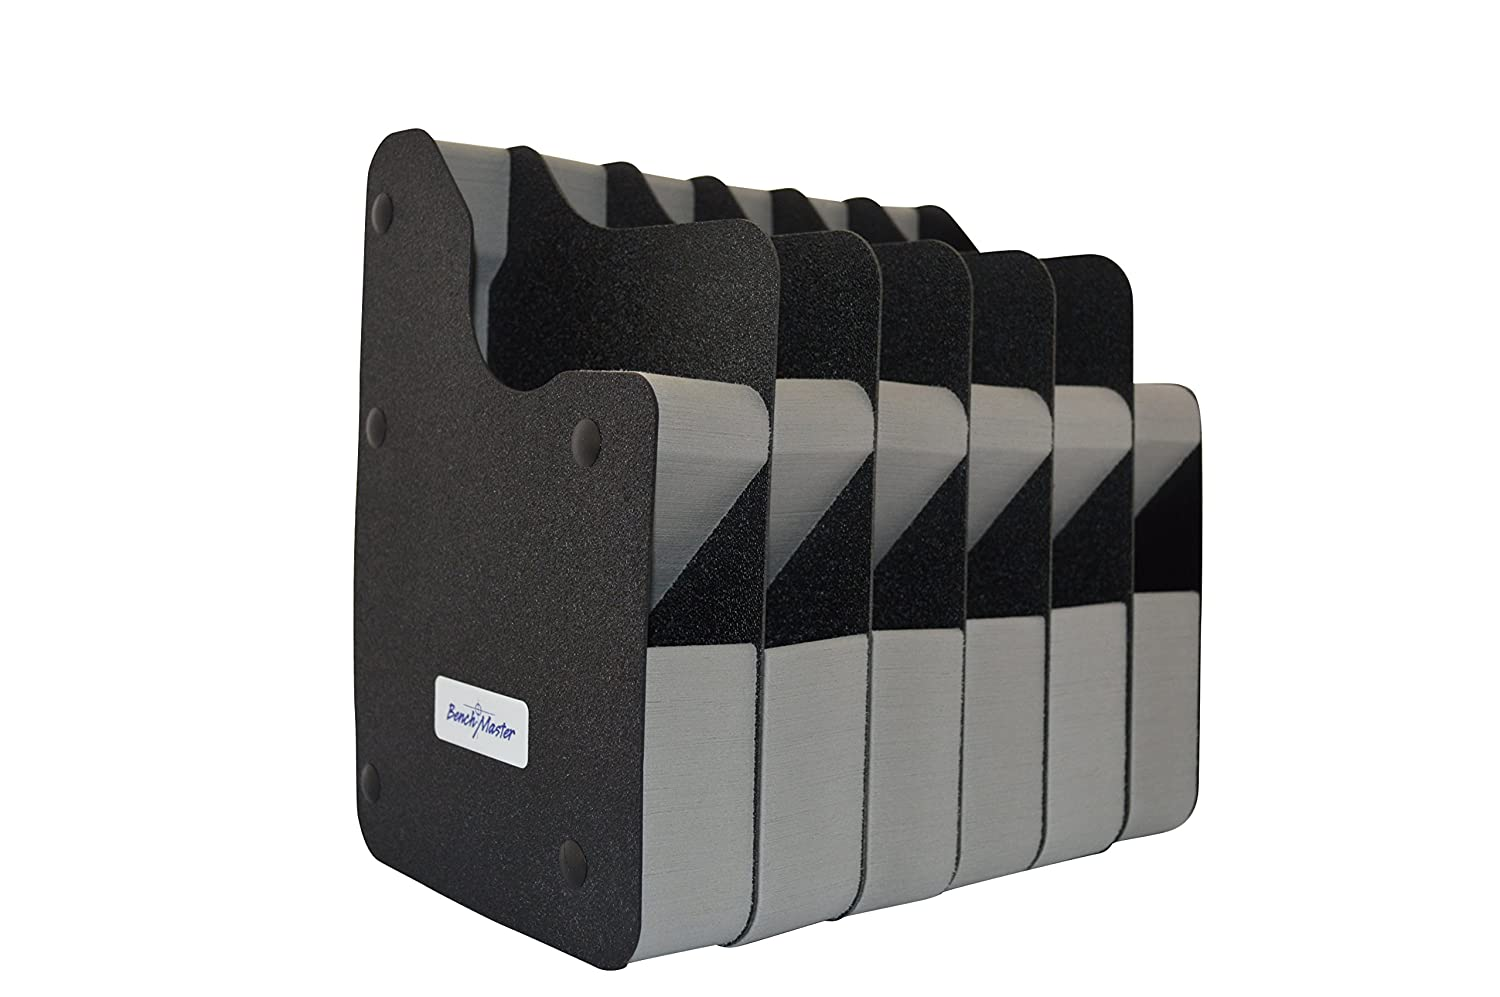 BenchMaster Weapon Rack - Eight (8) Gun Vertical Pistol Rack - Gun Safe Storage Accessories - Gun Rack